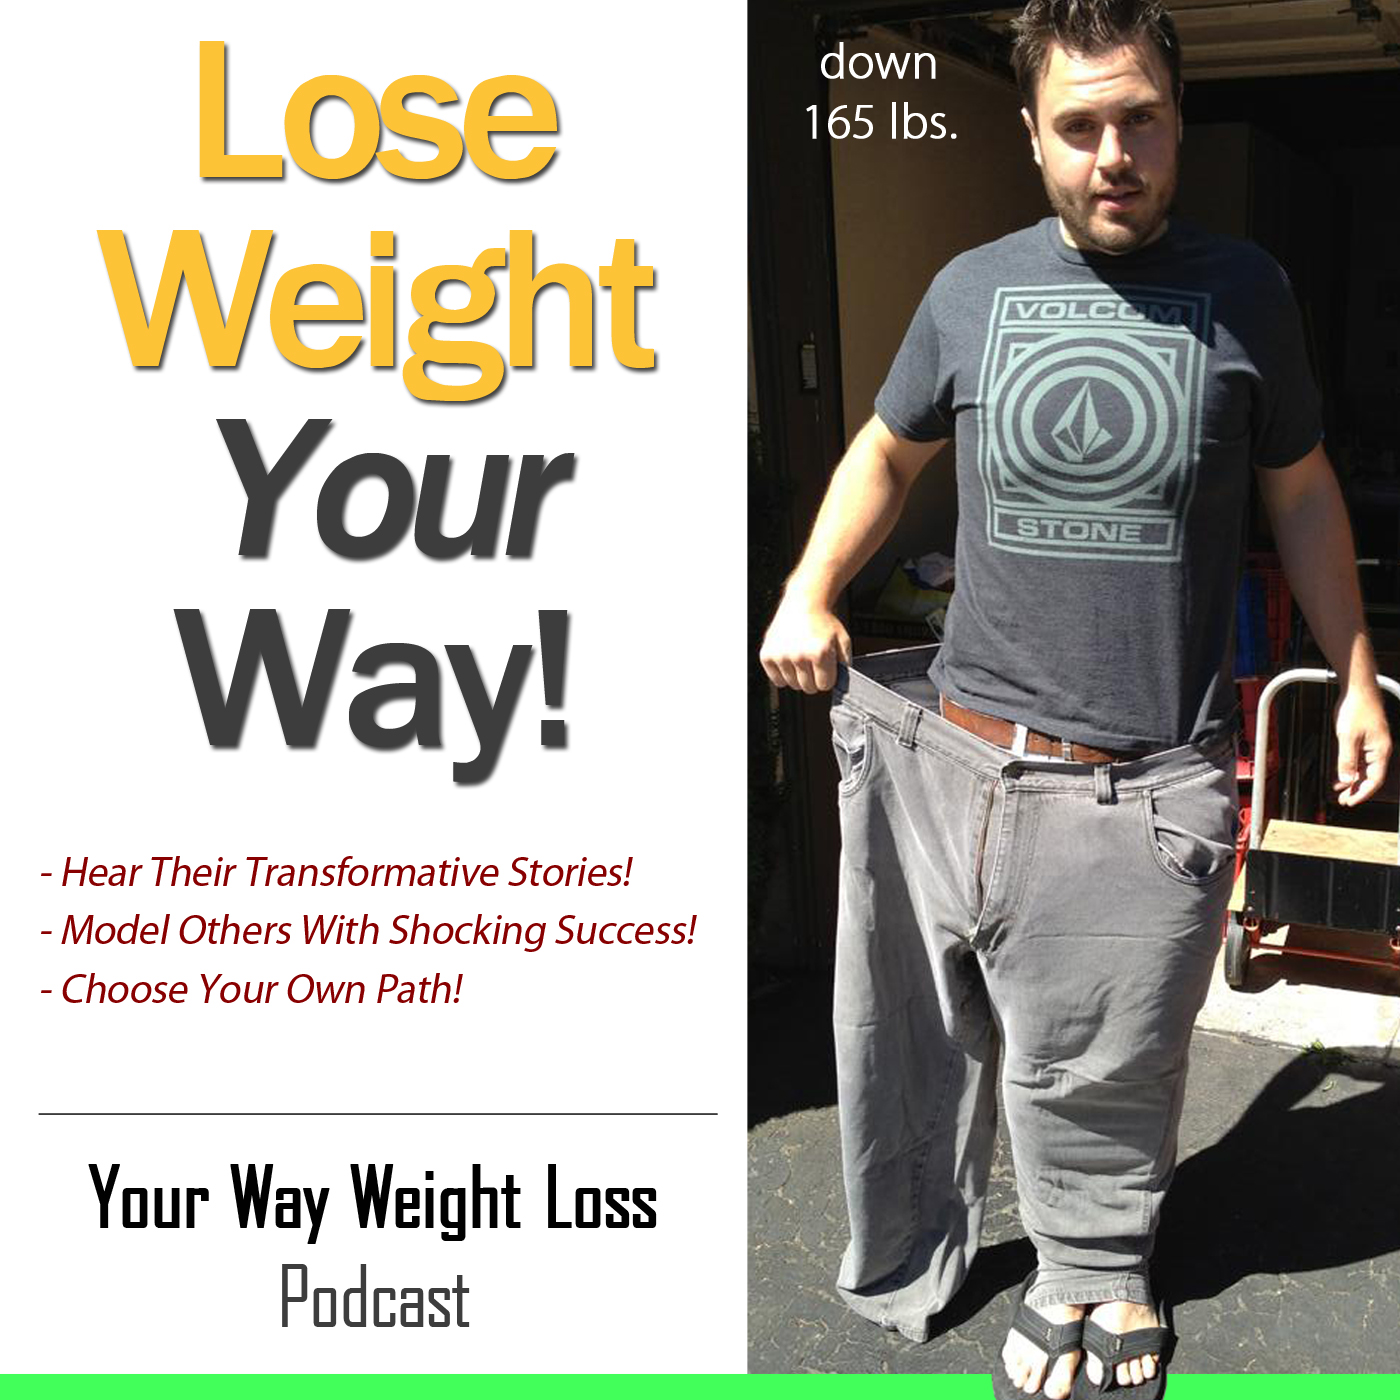 The Your Way Weight Loss Podcast show image